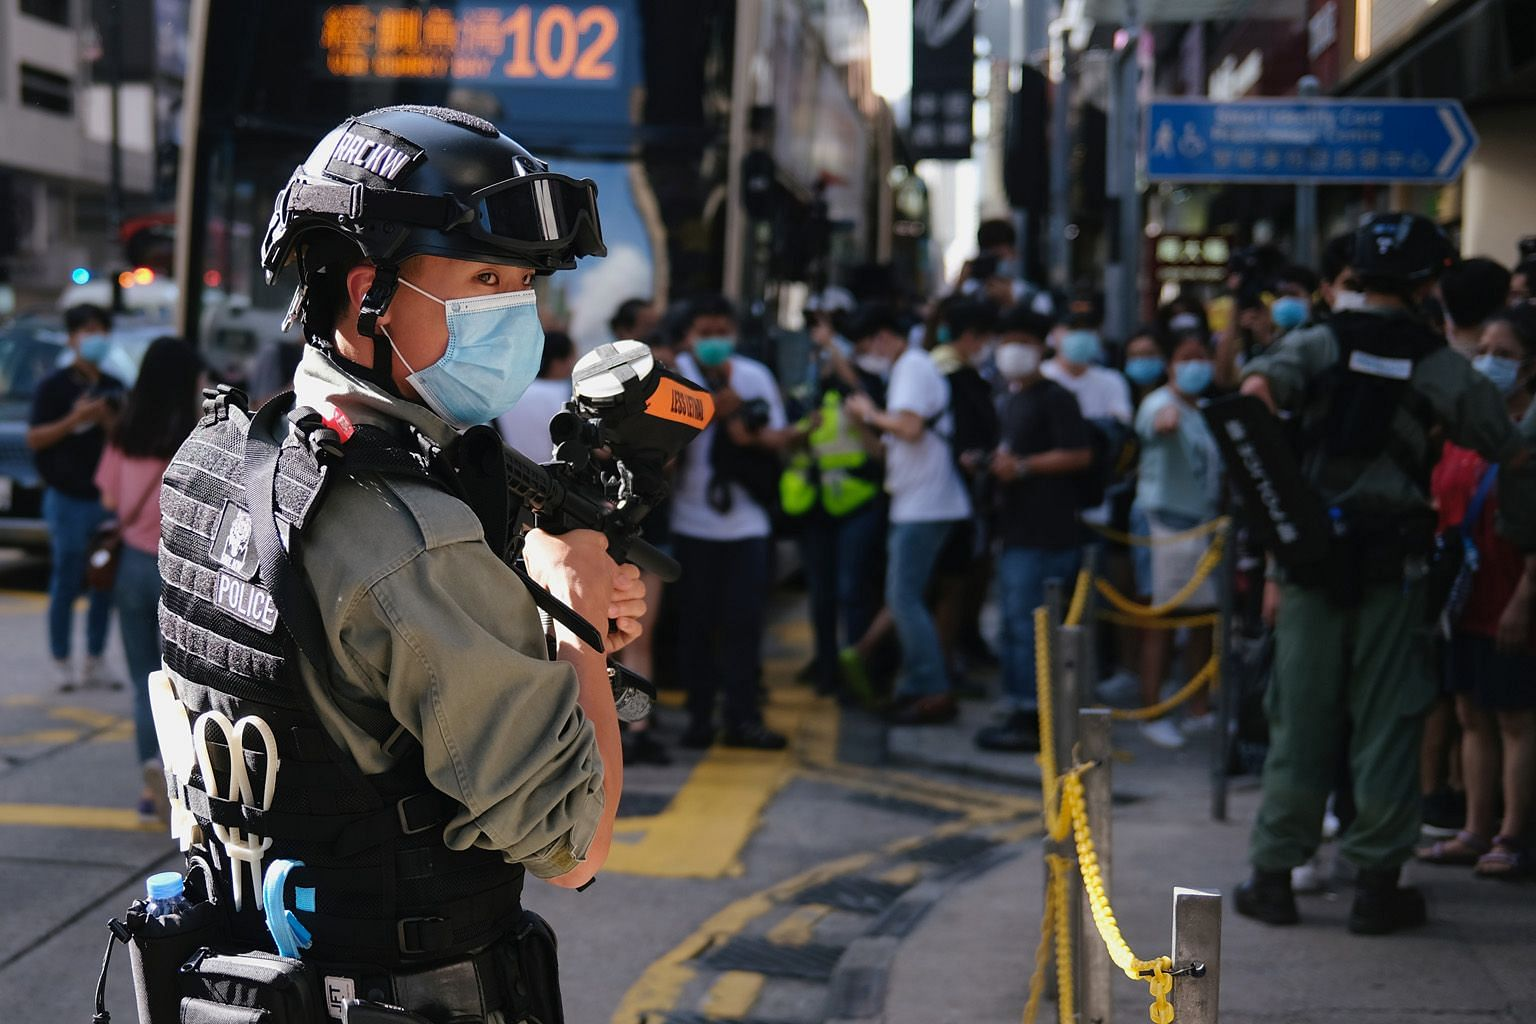 A riot police officer standing guard to prevent mass gatherings during a protest against the looming national security legislation in Hong Kong yesterday.